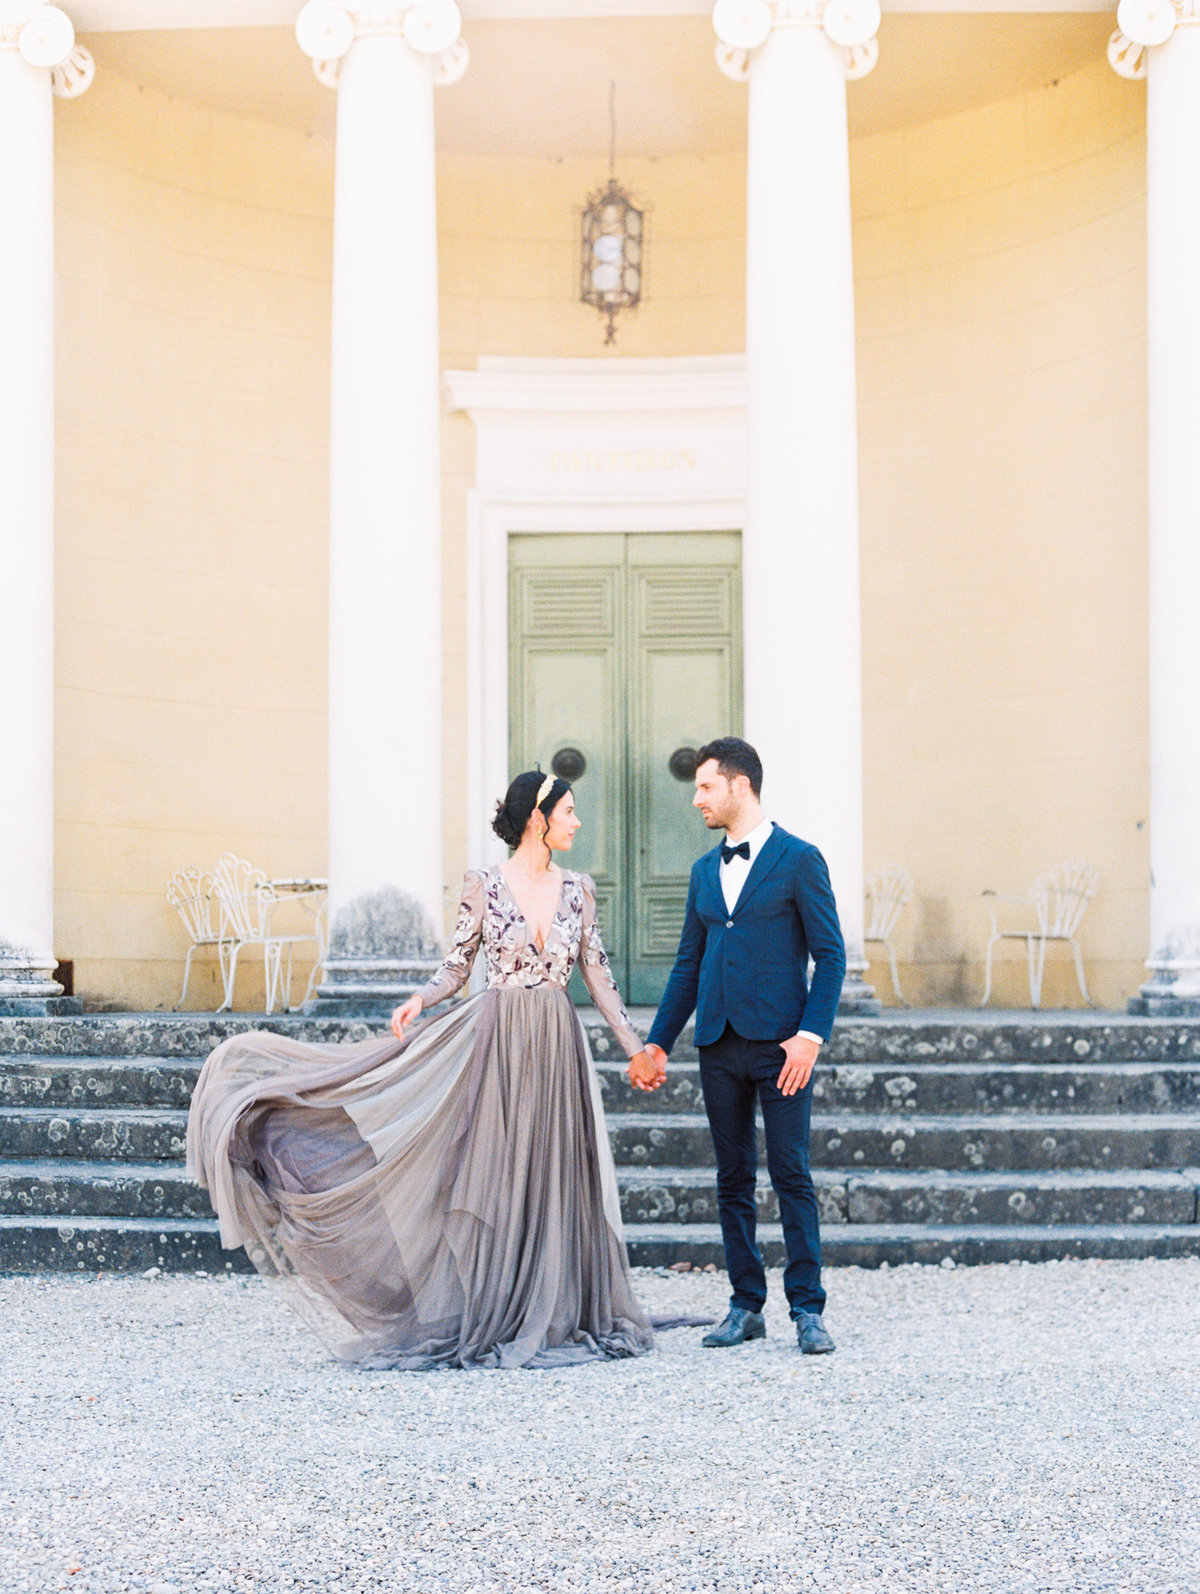 Marni.Wishart.Weddings_In_Tuscany.06.20.2018-1137